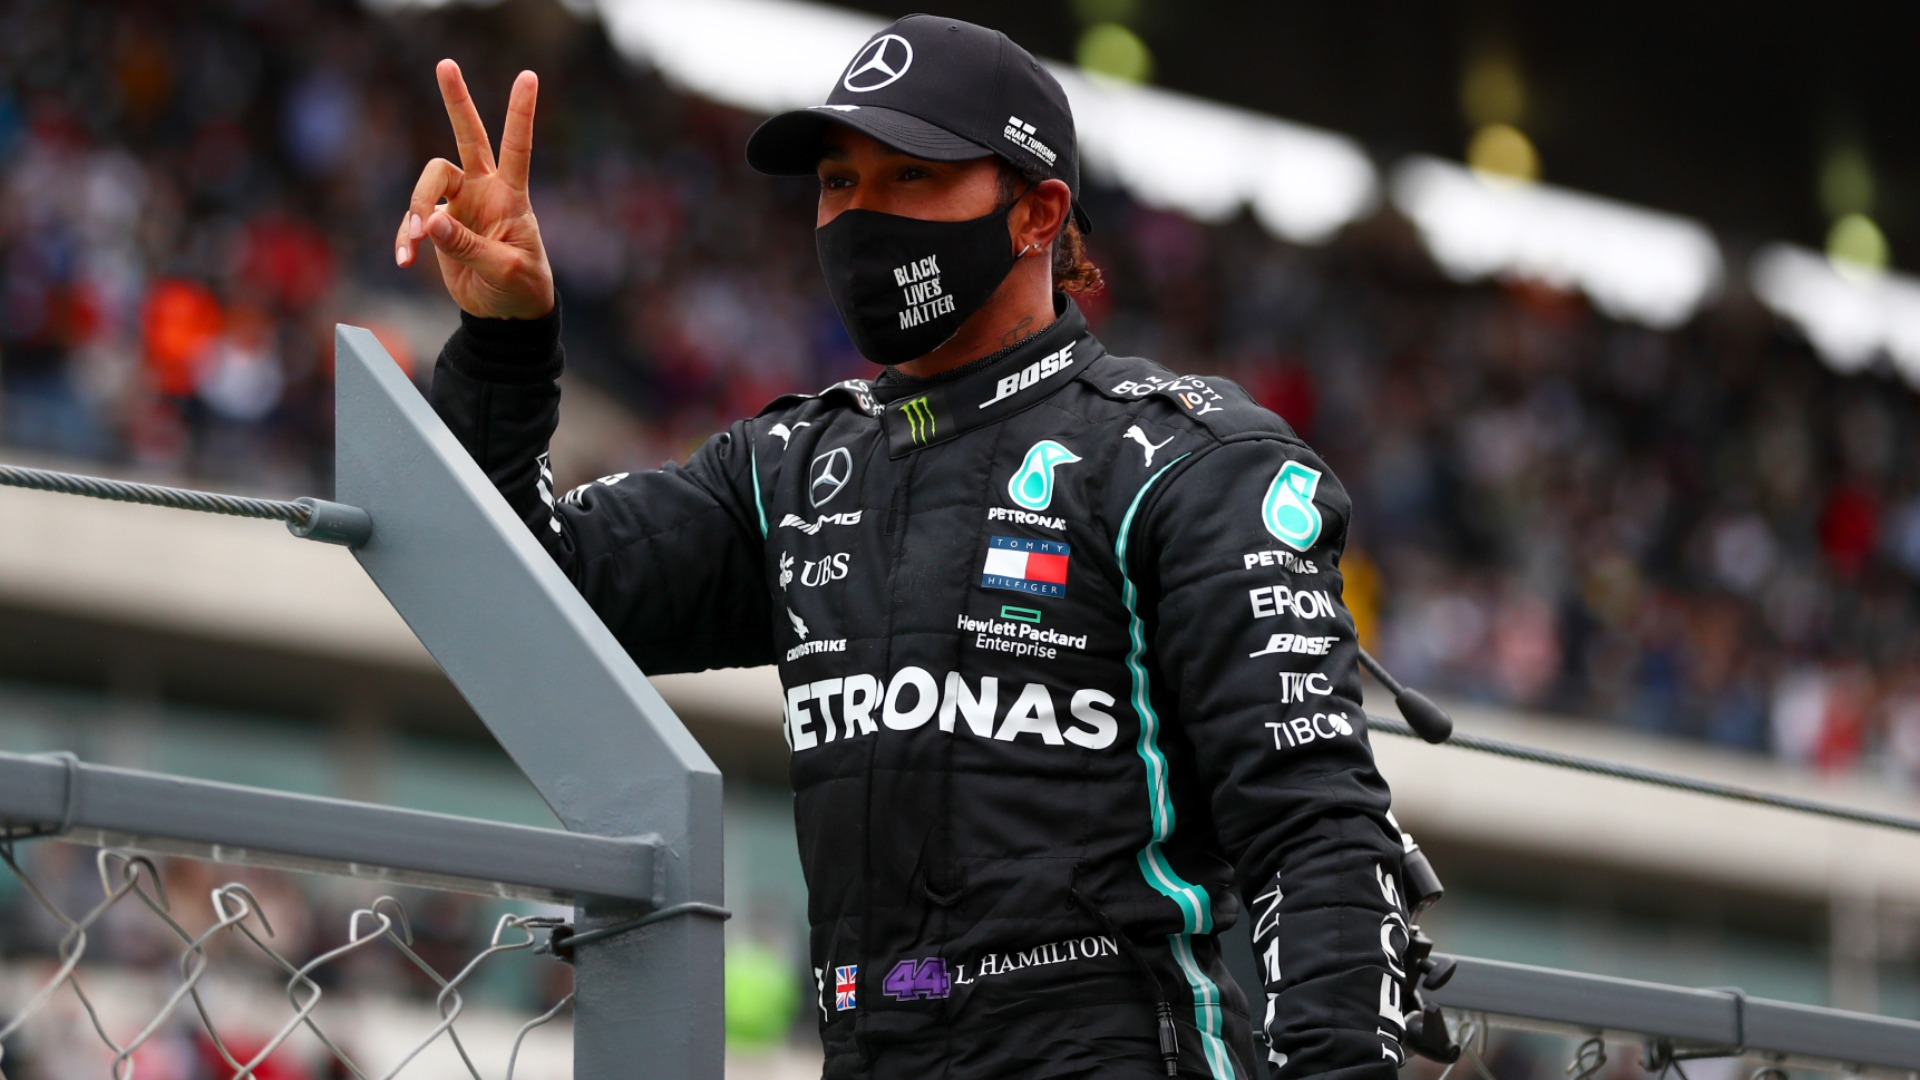 Rosberg lauds Hamilton as the Formula One GOAT ahead of renewed rivalry in Extreme E